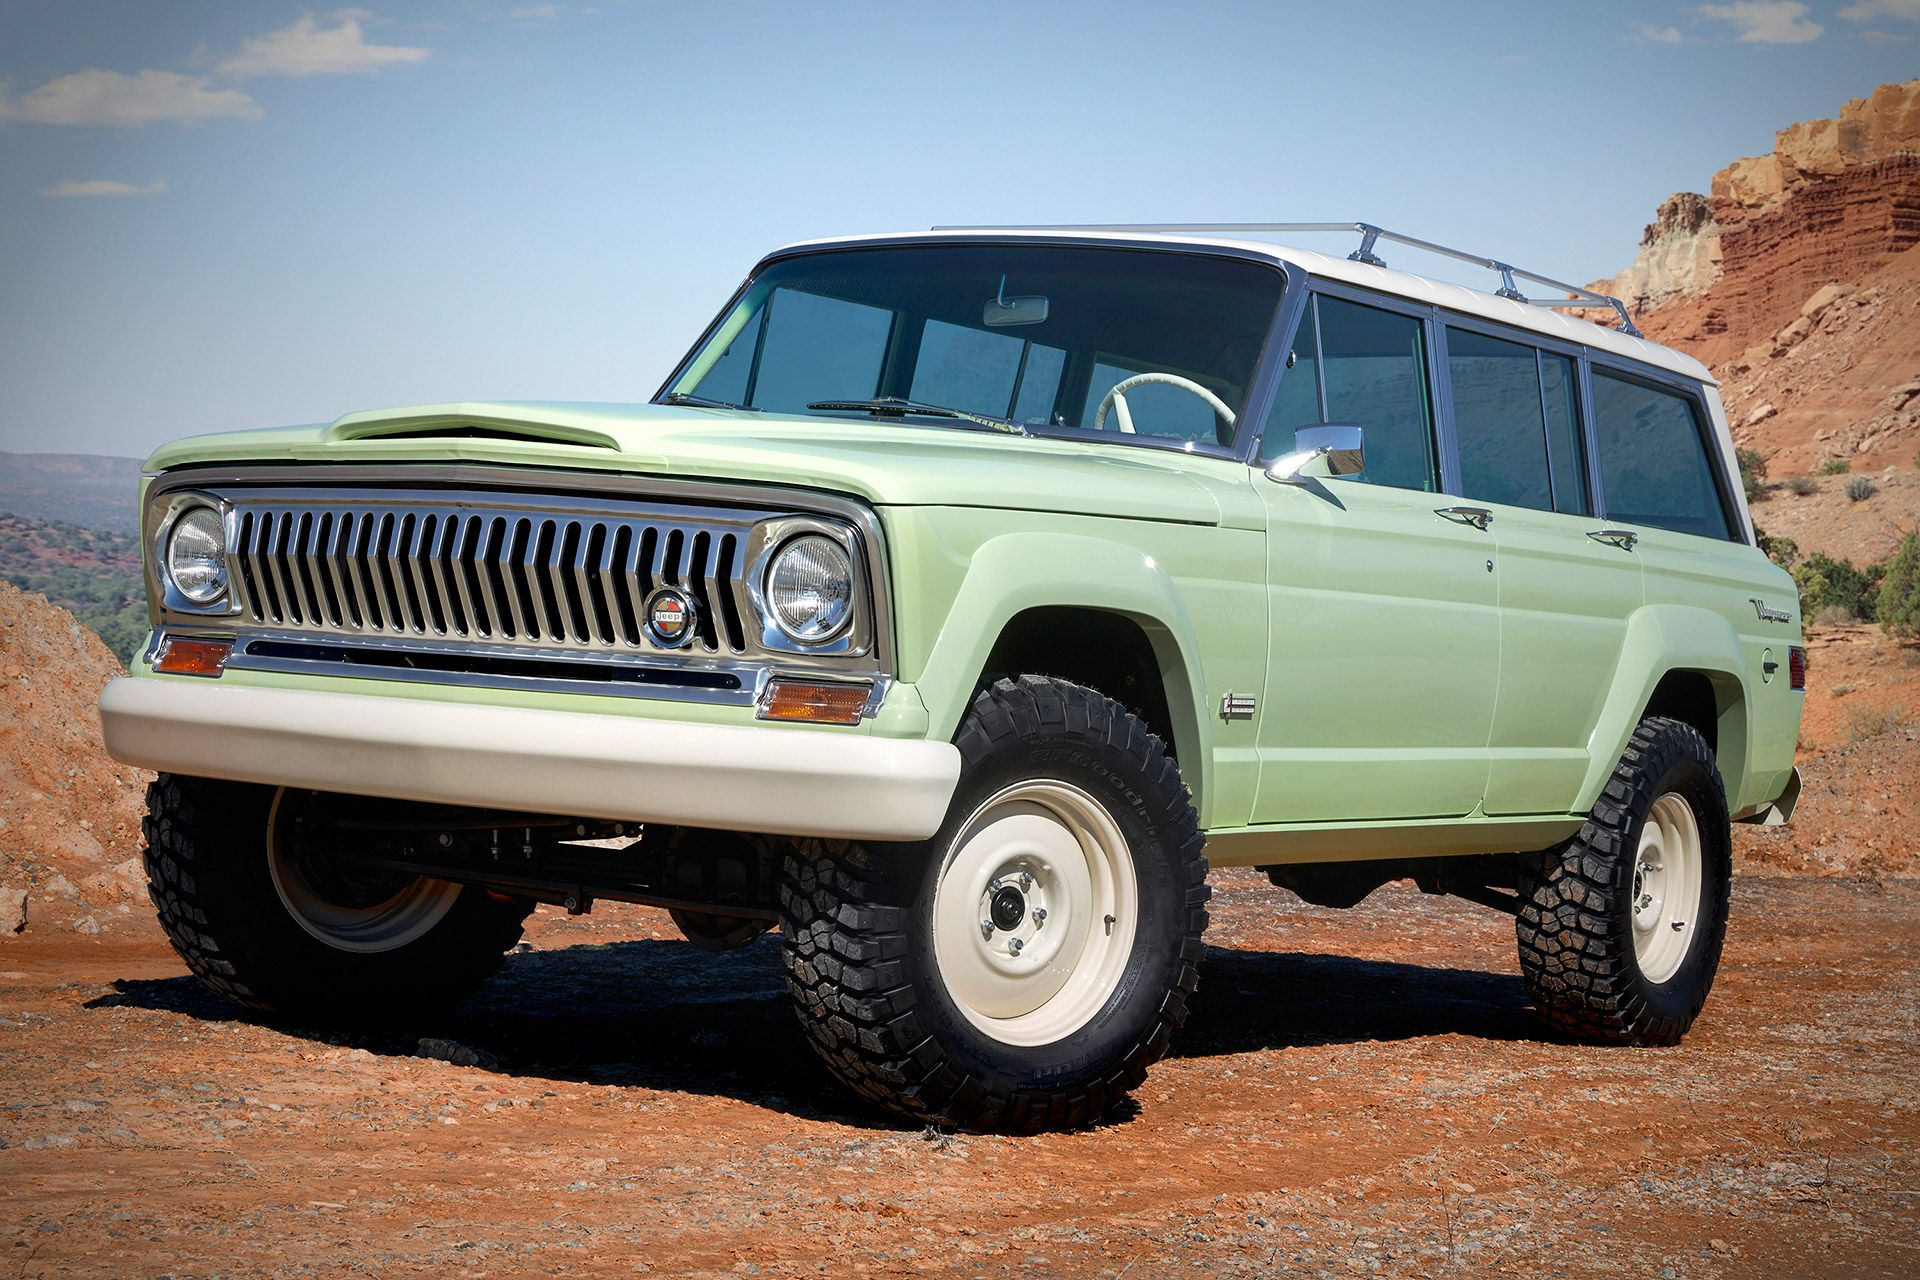 Based On A 1965 Model The Jeep Wagoneer Roadtrip Concept Recalls